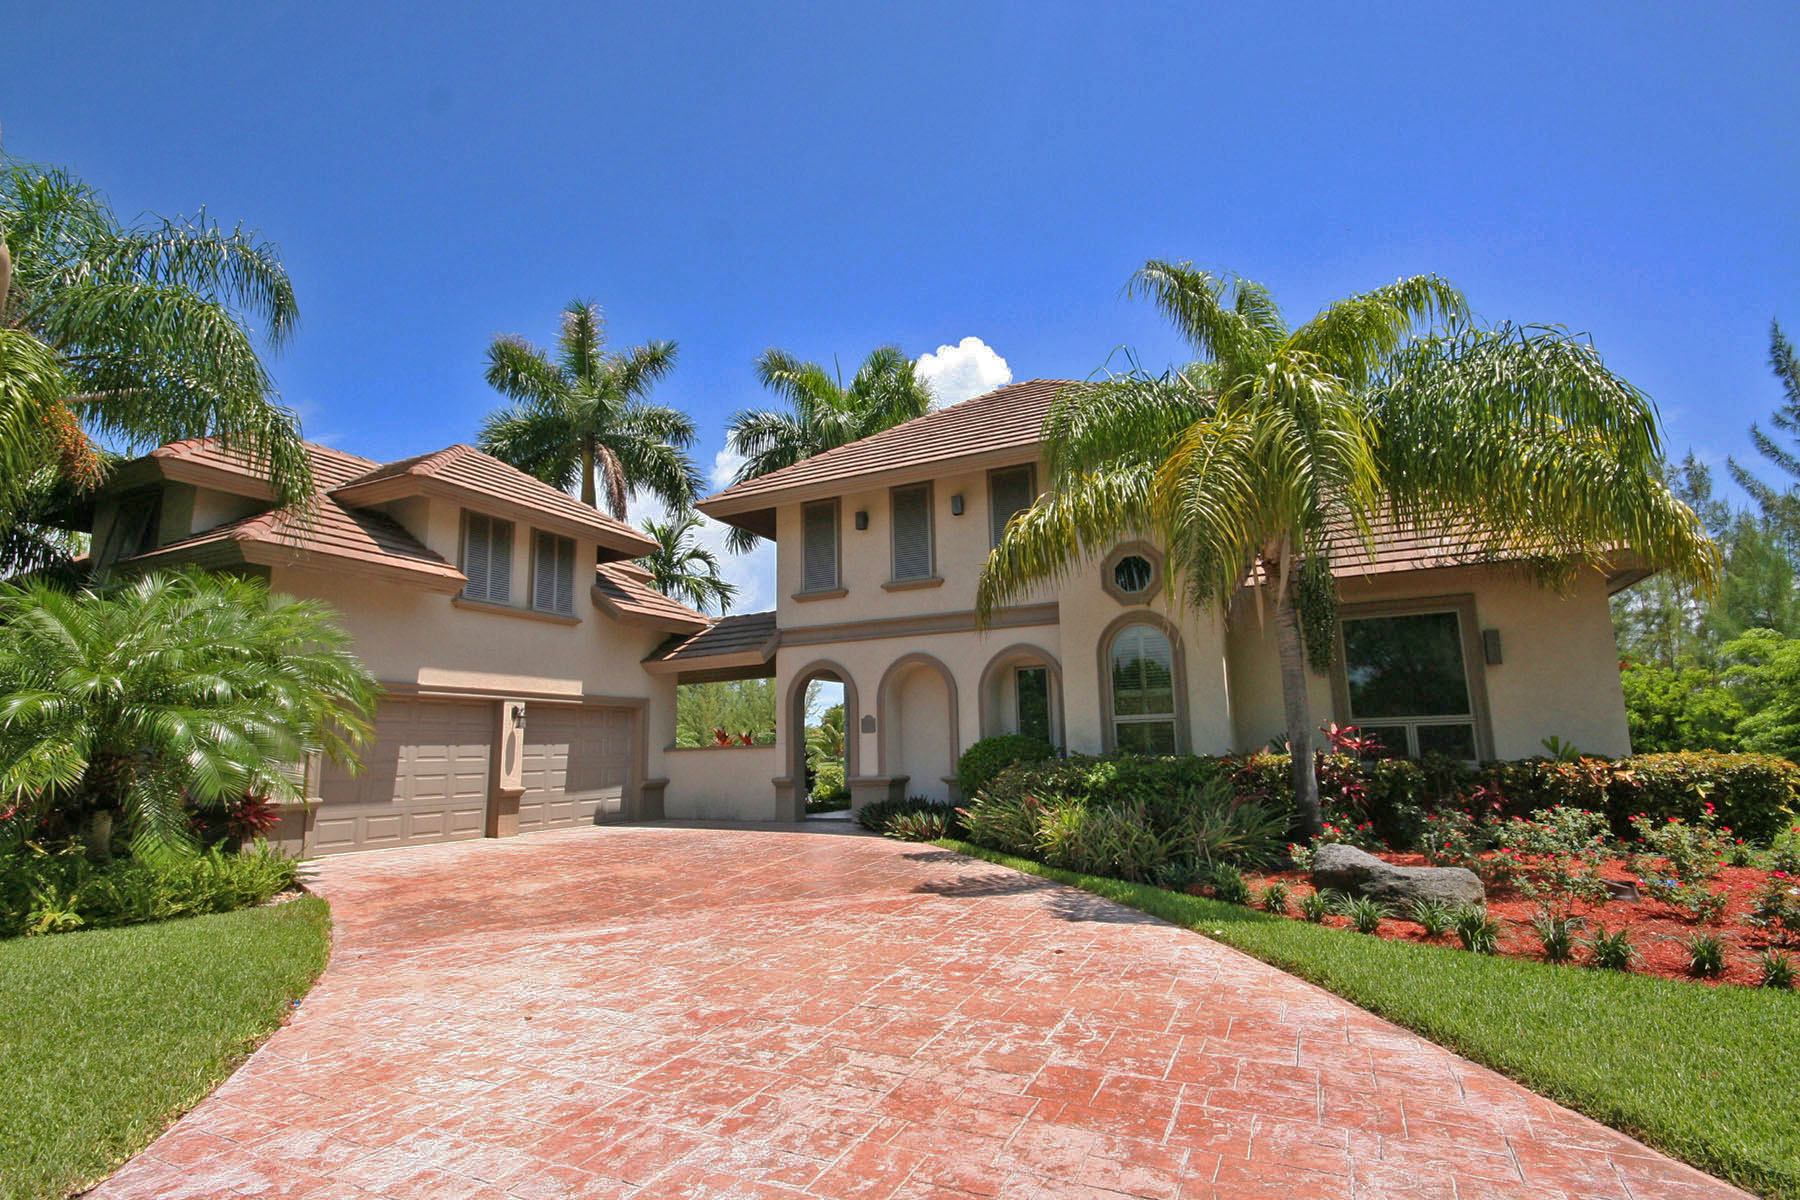 Maison unifamiliale pour l Vente à Stunning Home on the Canal in Fortune Bay! Bahamas